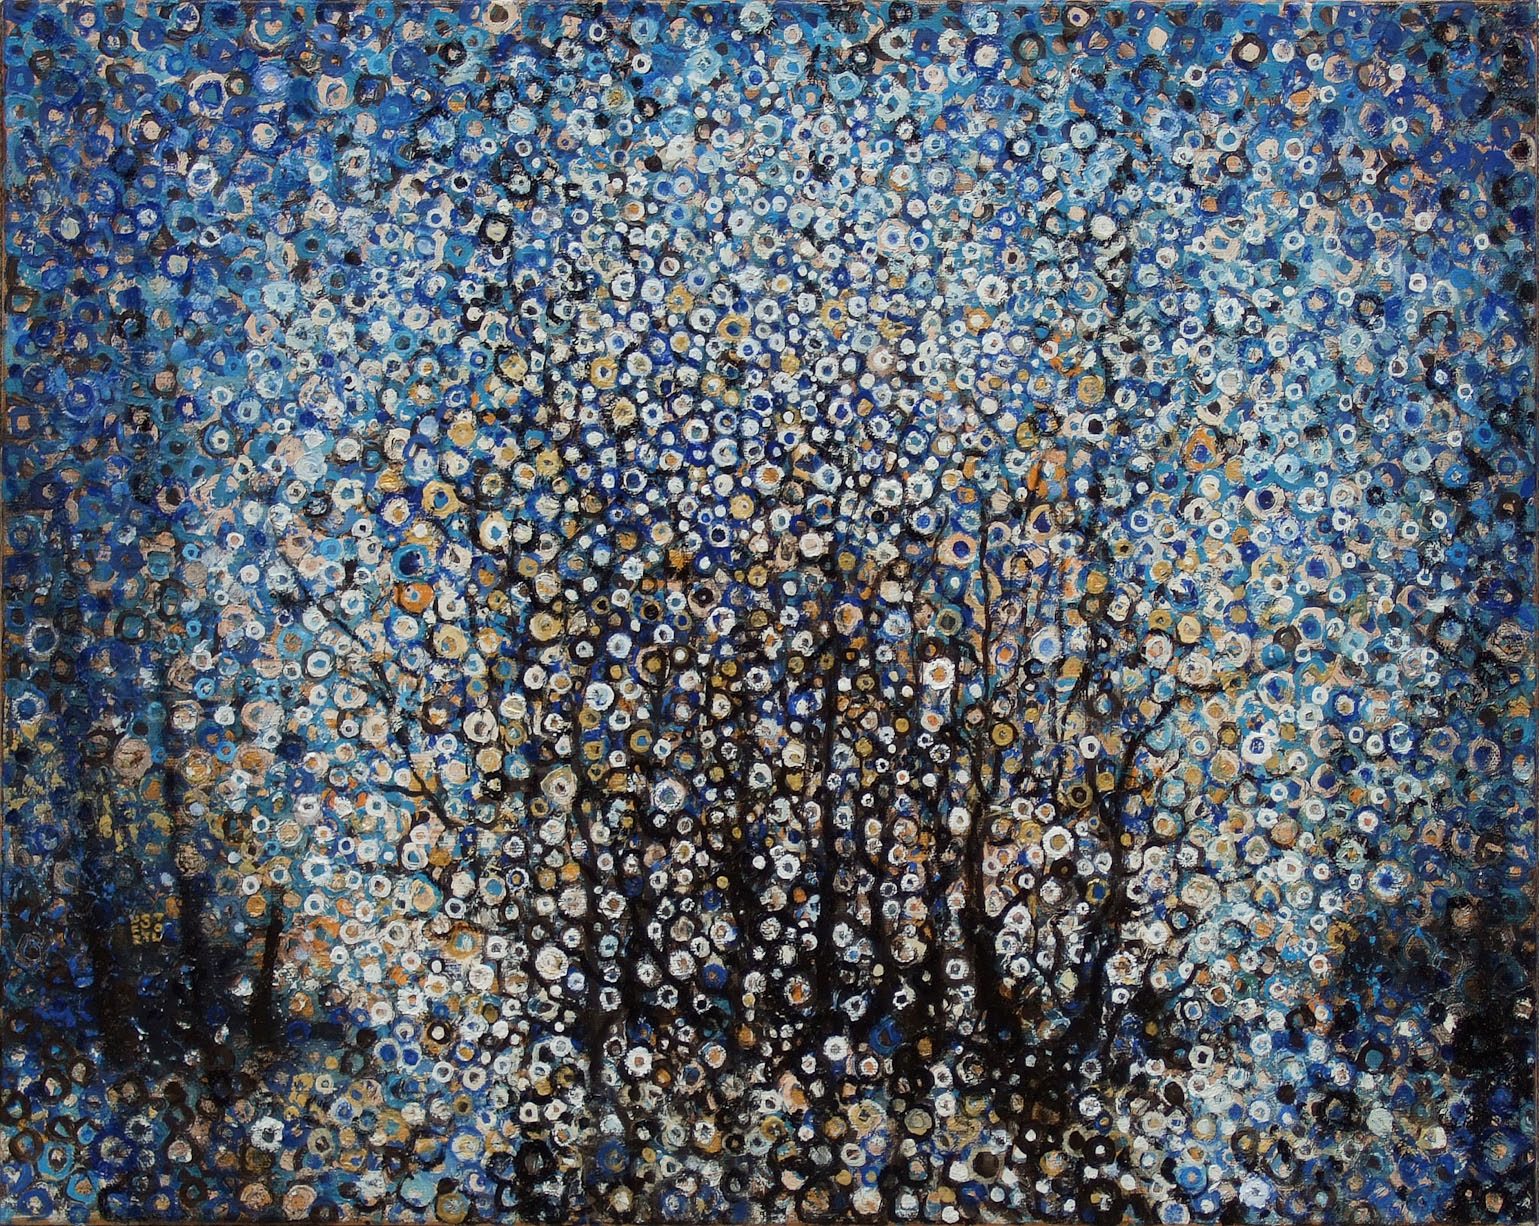 'Copse' by Randall Stoltzfus, 2007, oil and gold leaf on canvas, 16 by 20 inches